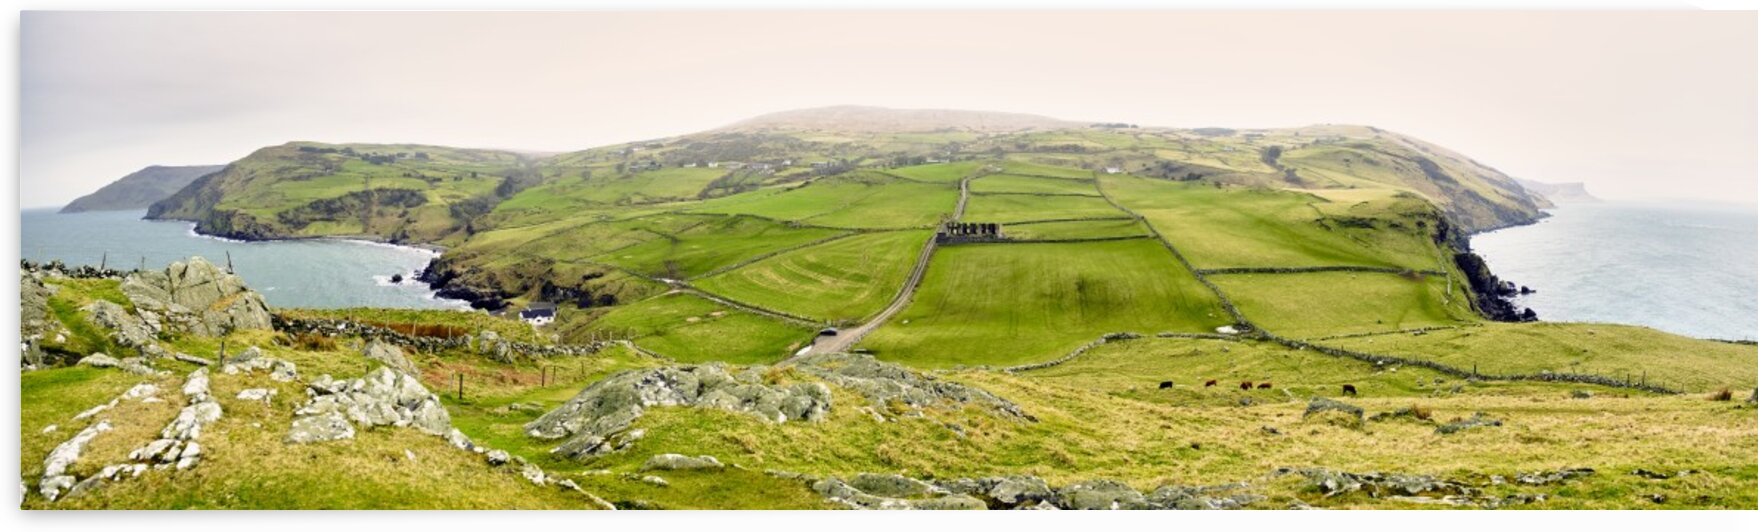 Panorama of coast from Torrs head County Antrim Northern Ireland United Kingdom by Atelier Knox